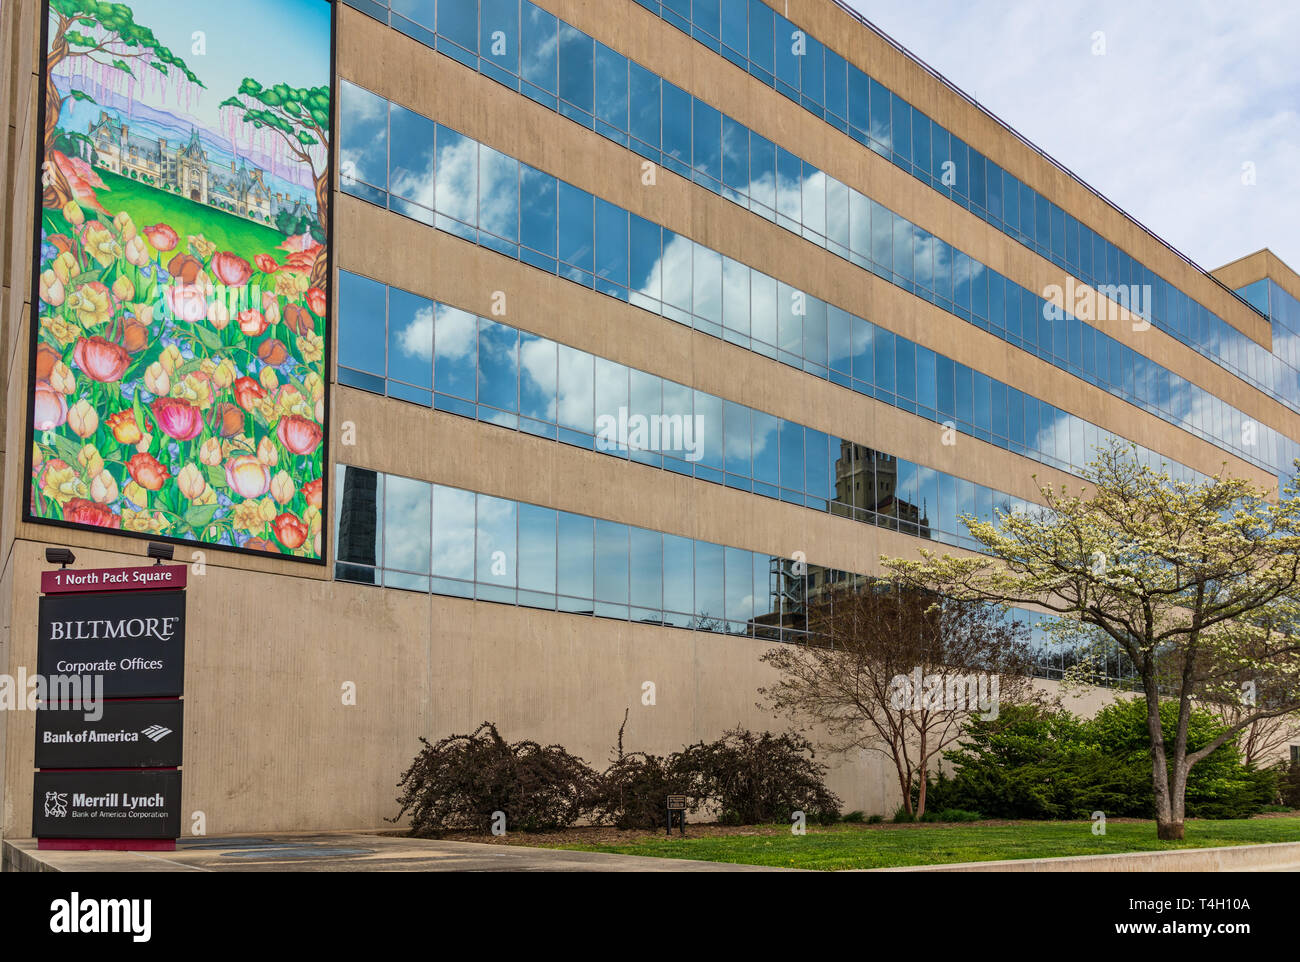 ASHEVILLE, NC, USA-4/11/19: The Biltmore Corporate office building, in early spring, with a mural of Biltmore House. Stock Photo